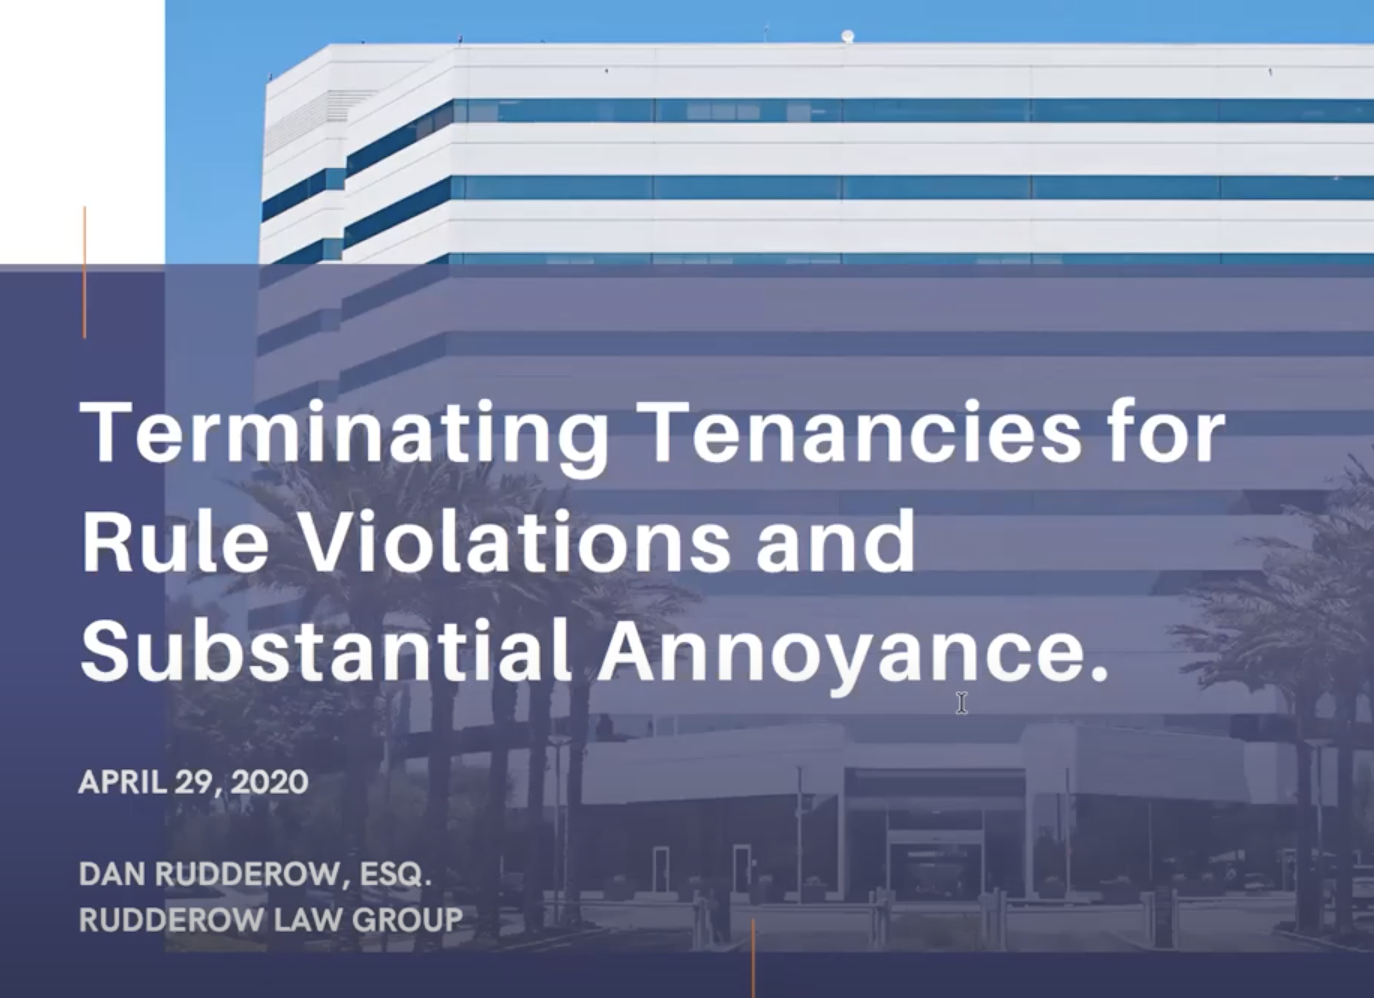 Terminating Tenancies for Rule Violations and Substantial Annoyance